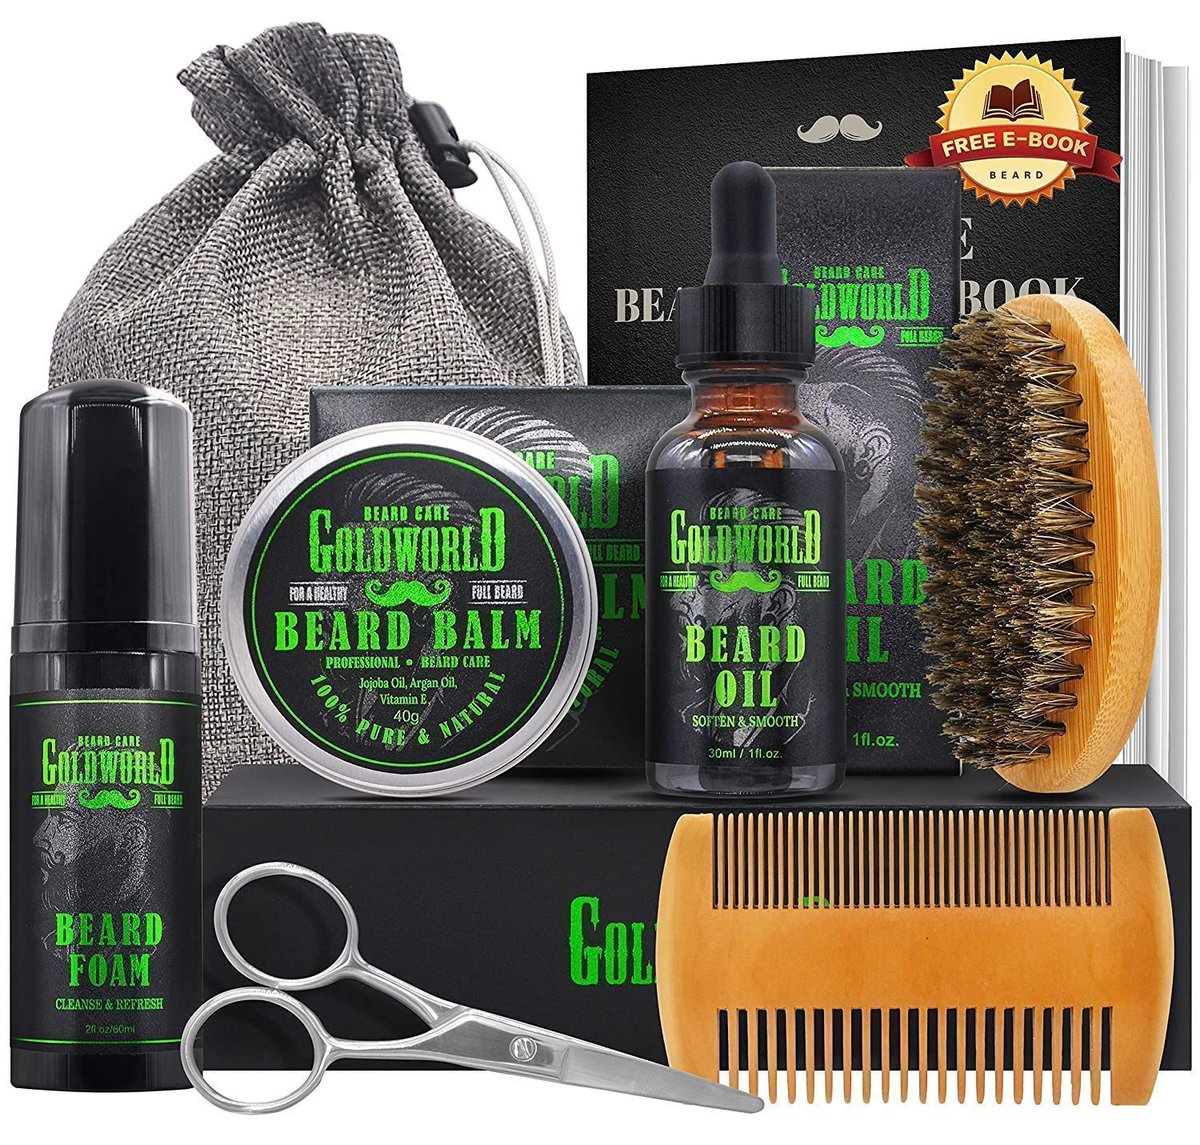 ad: $6.52   Beard Growth Grooming Kit    CLIP THE COUPON ON PAGE   Link0  Link0